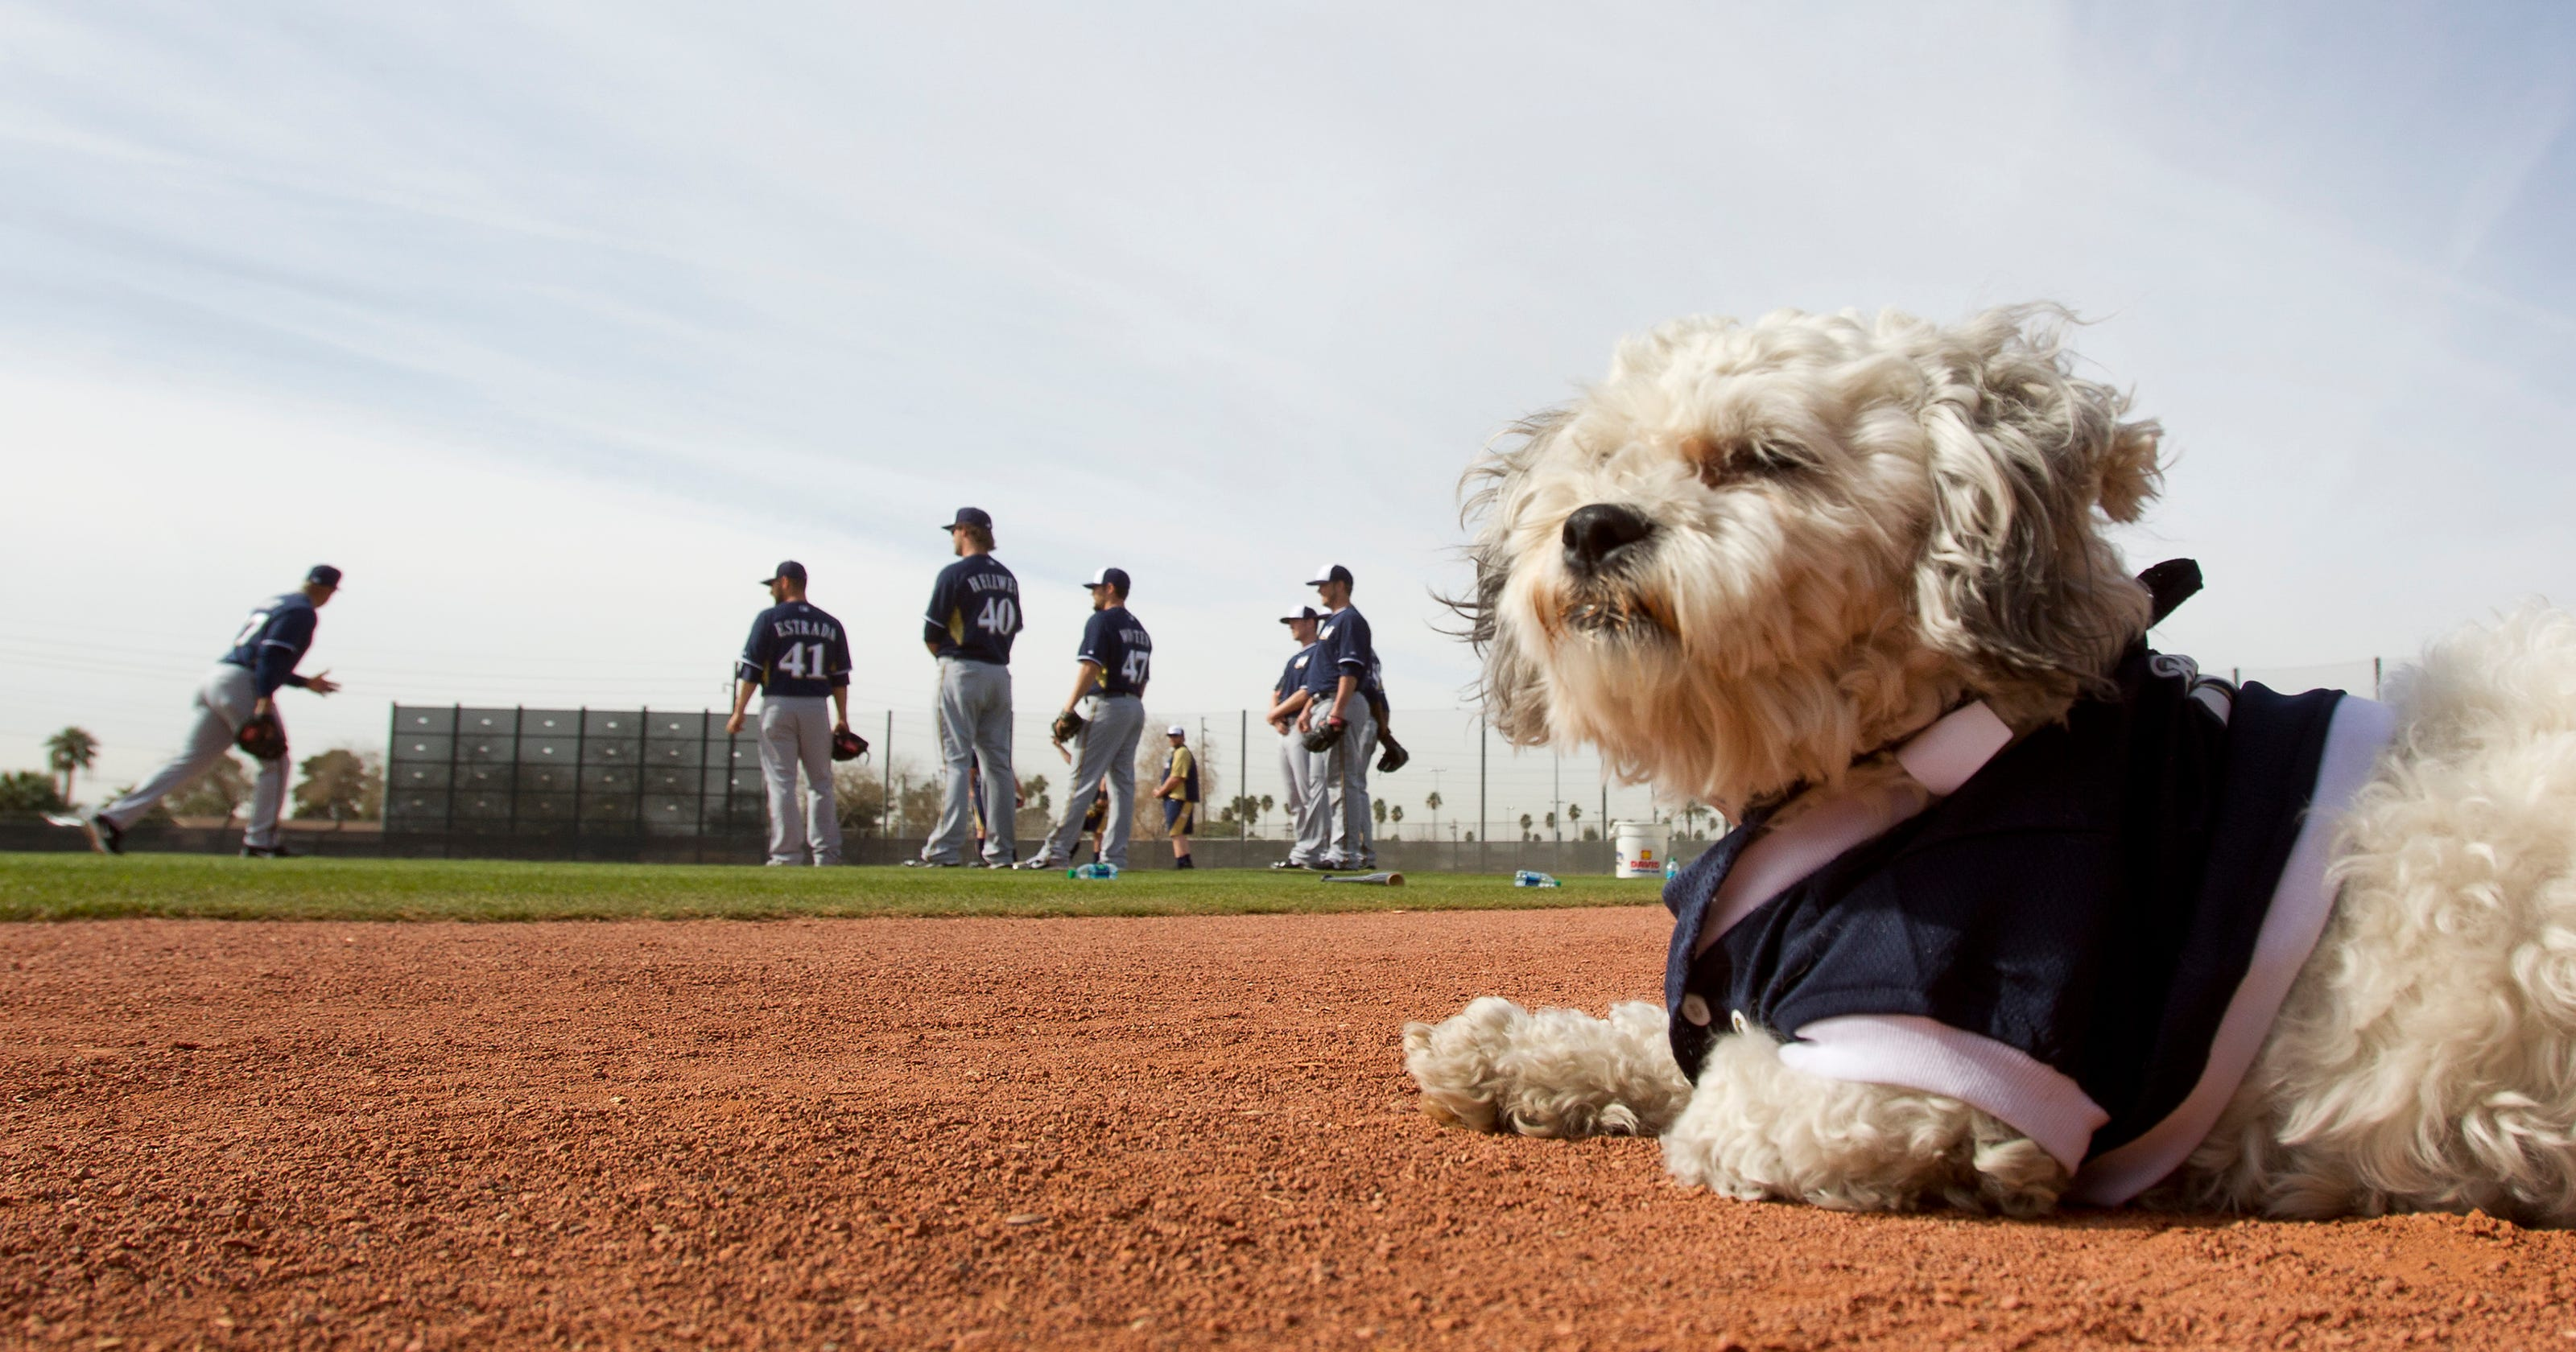 camp confidential: brewers digging these dog days